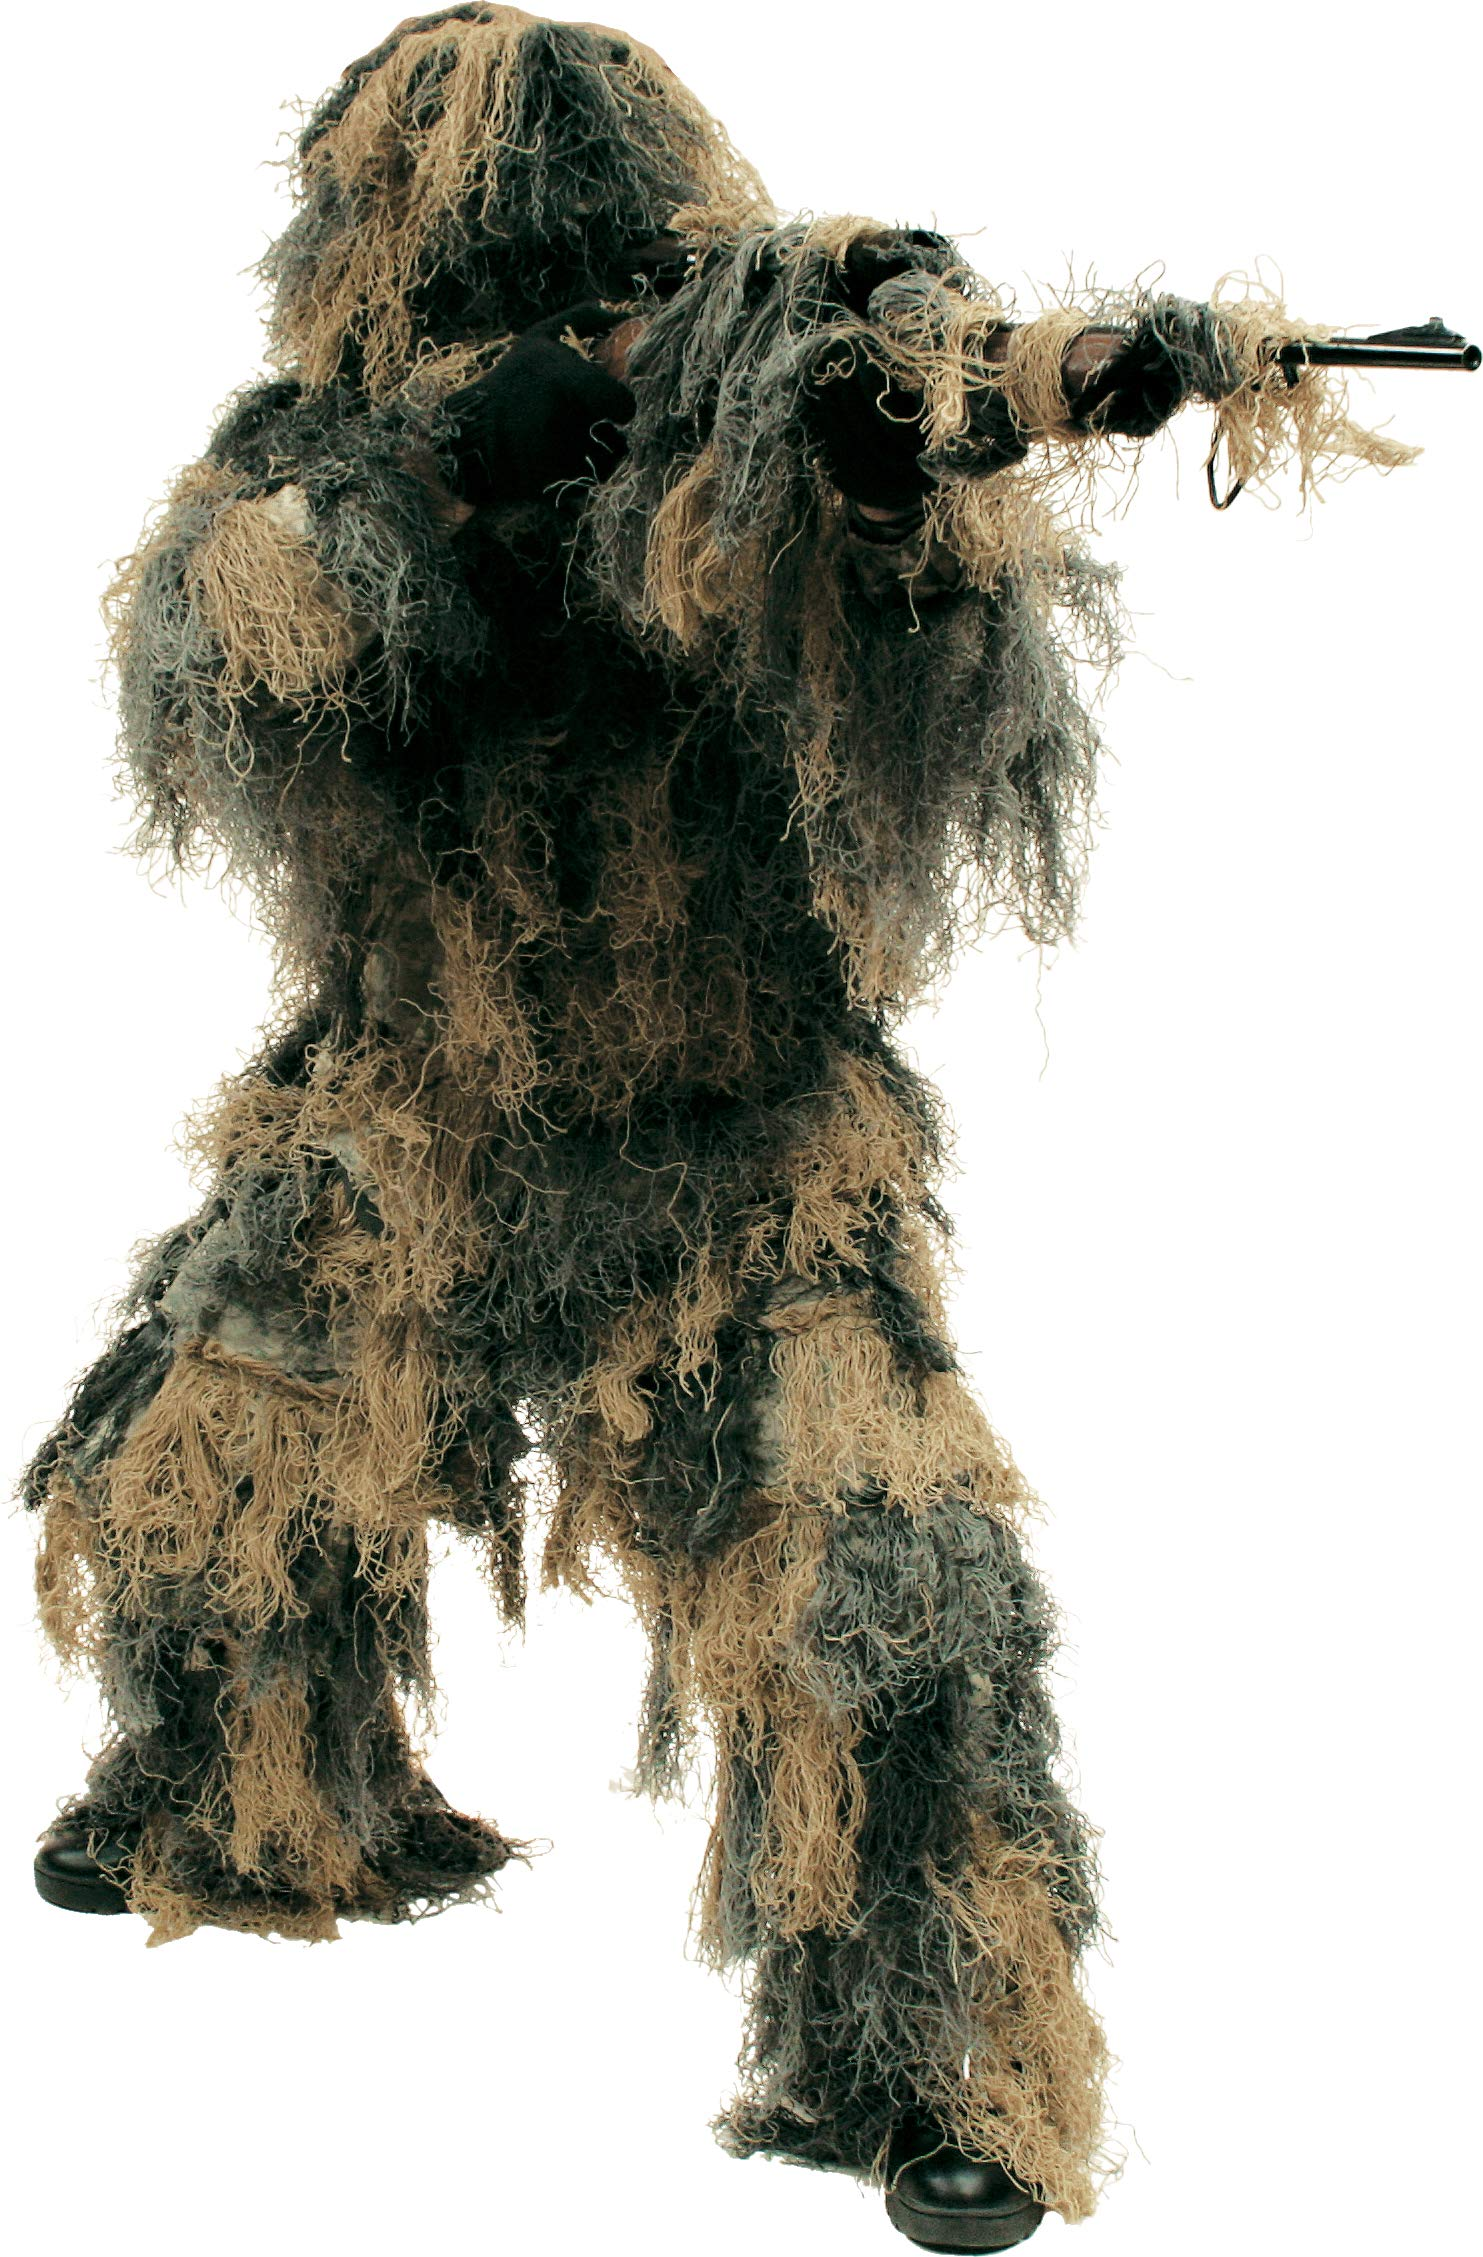 Red Rock Outdoor Gear - Ghillie Suit by Red Rock Outdoor Gear